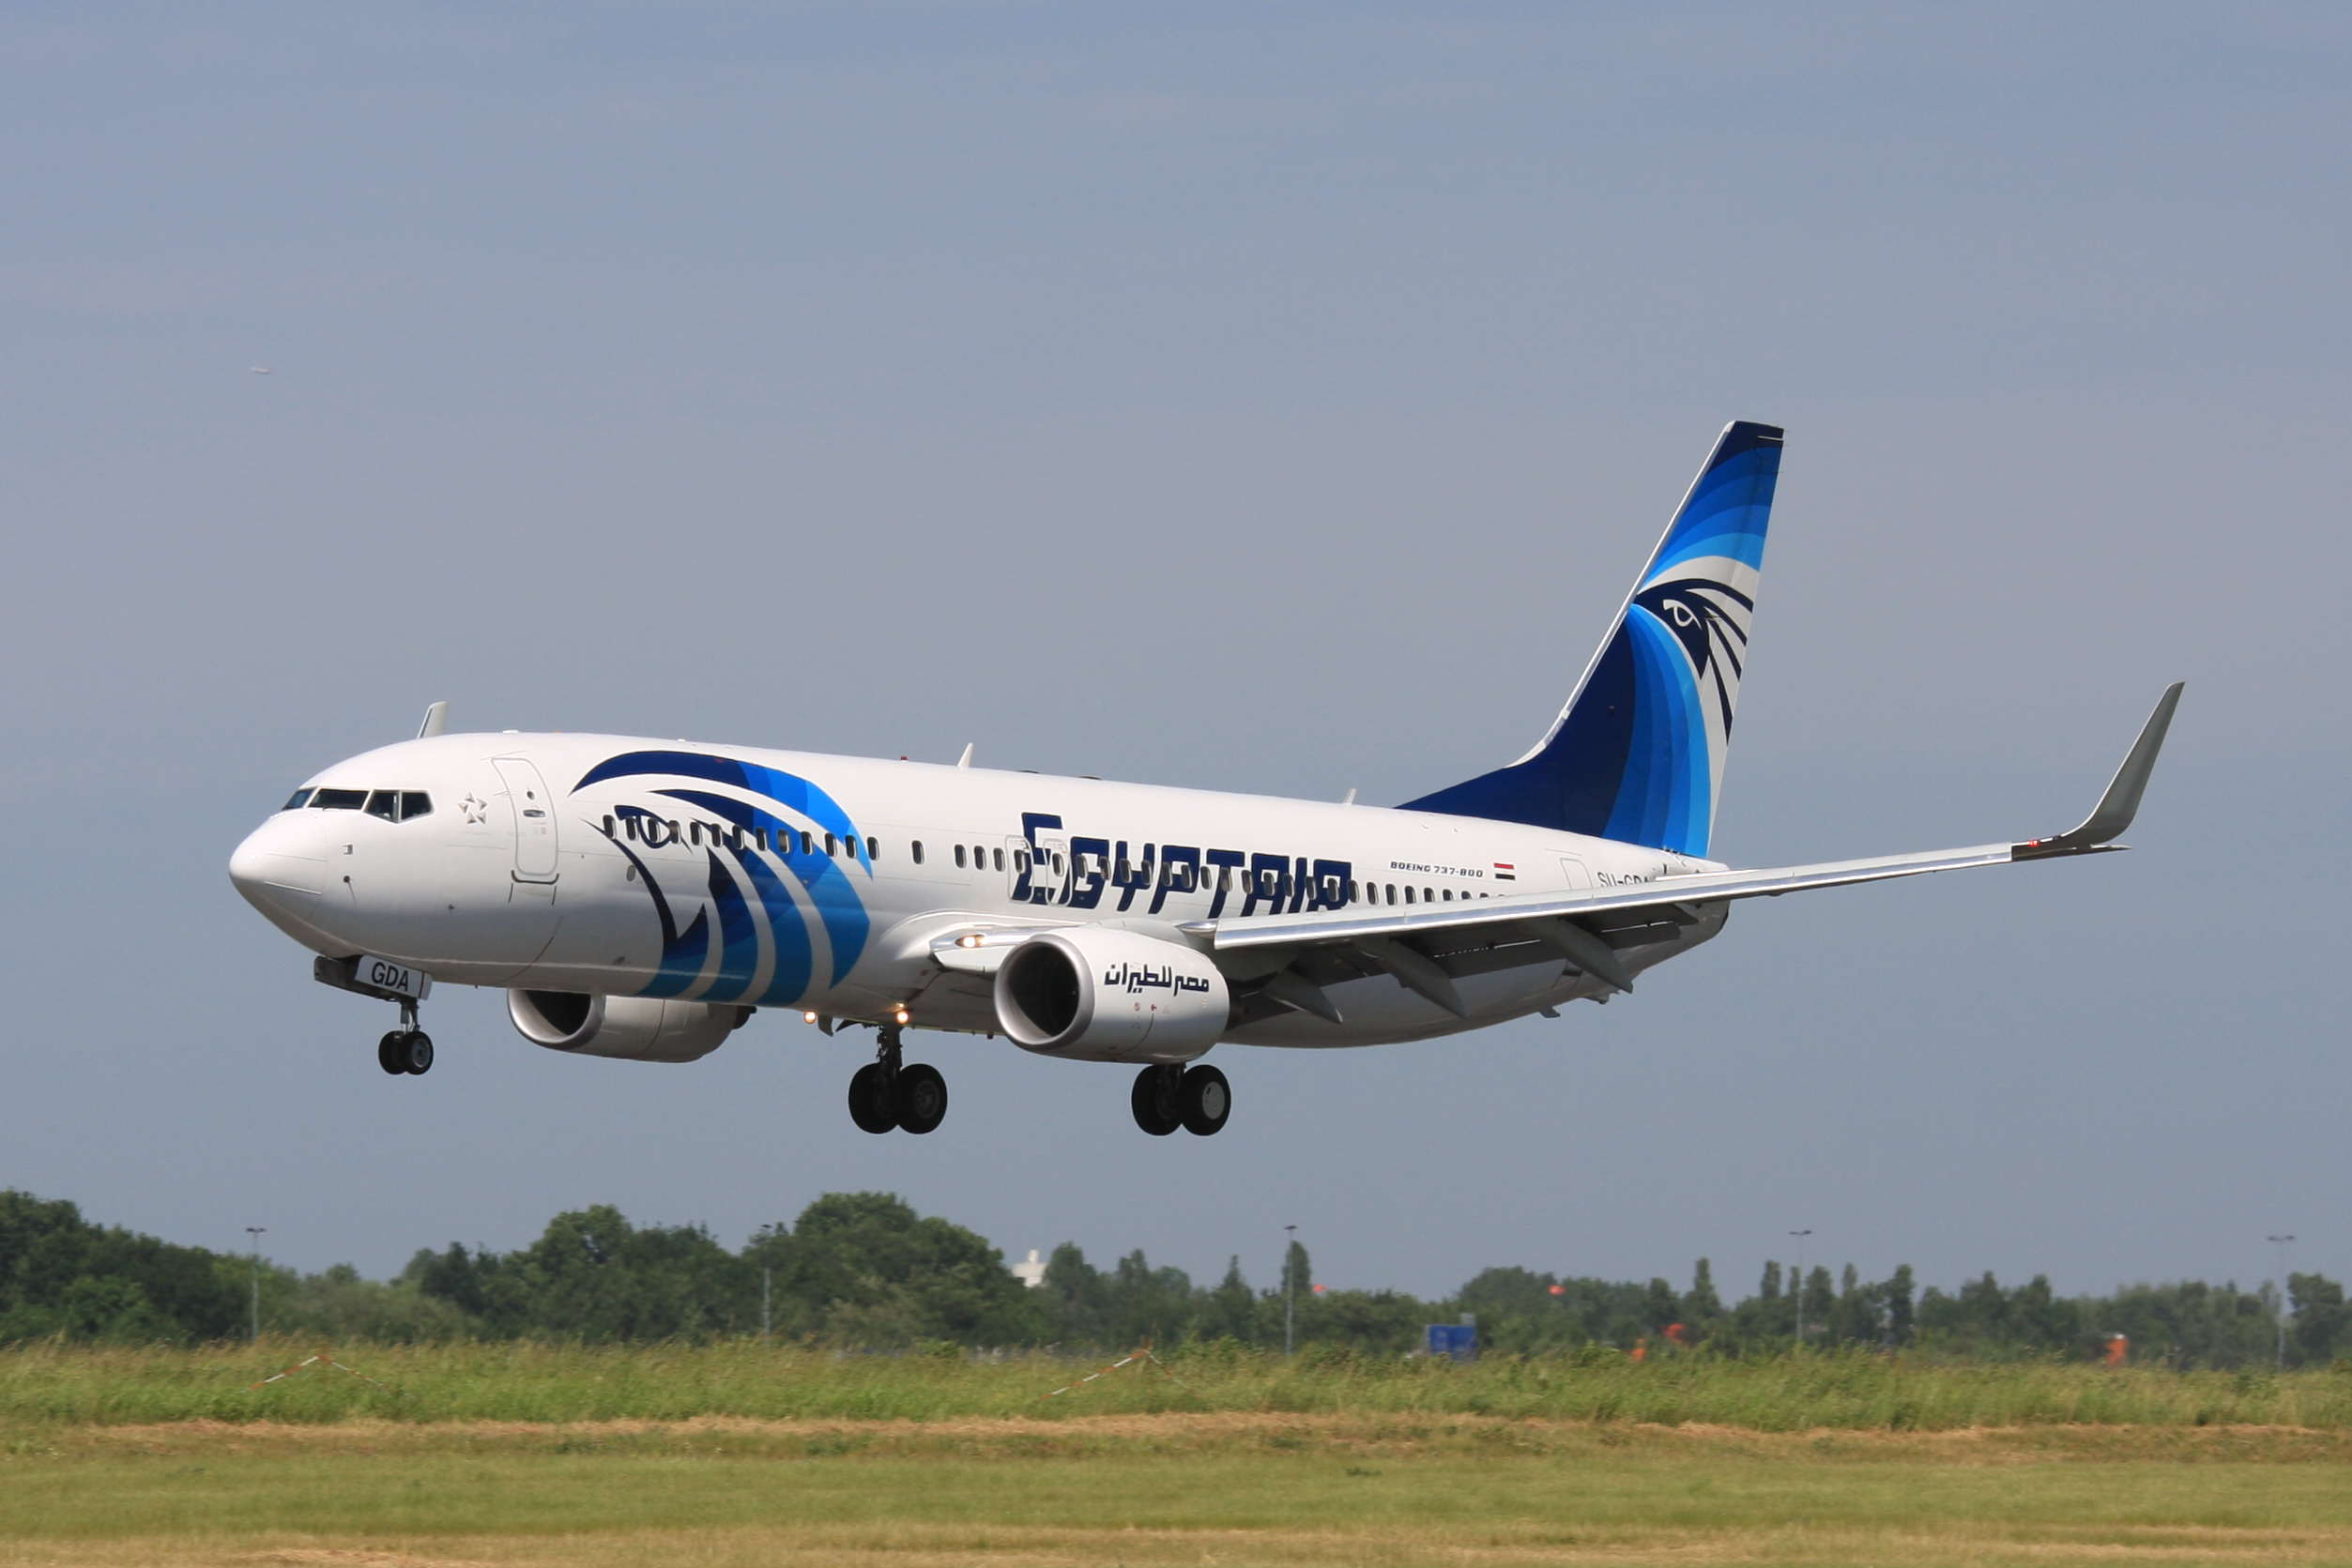 1 6 0 BREAKING: Fate Of Missing EgyptAir Flight Reportedly Discovered